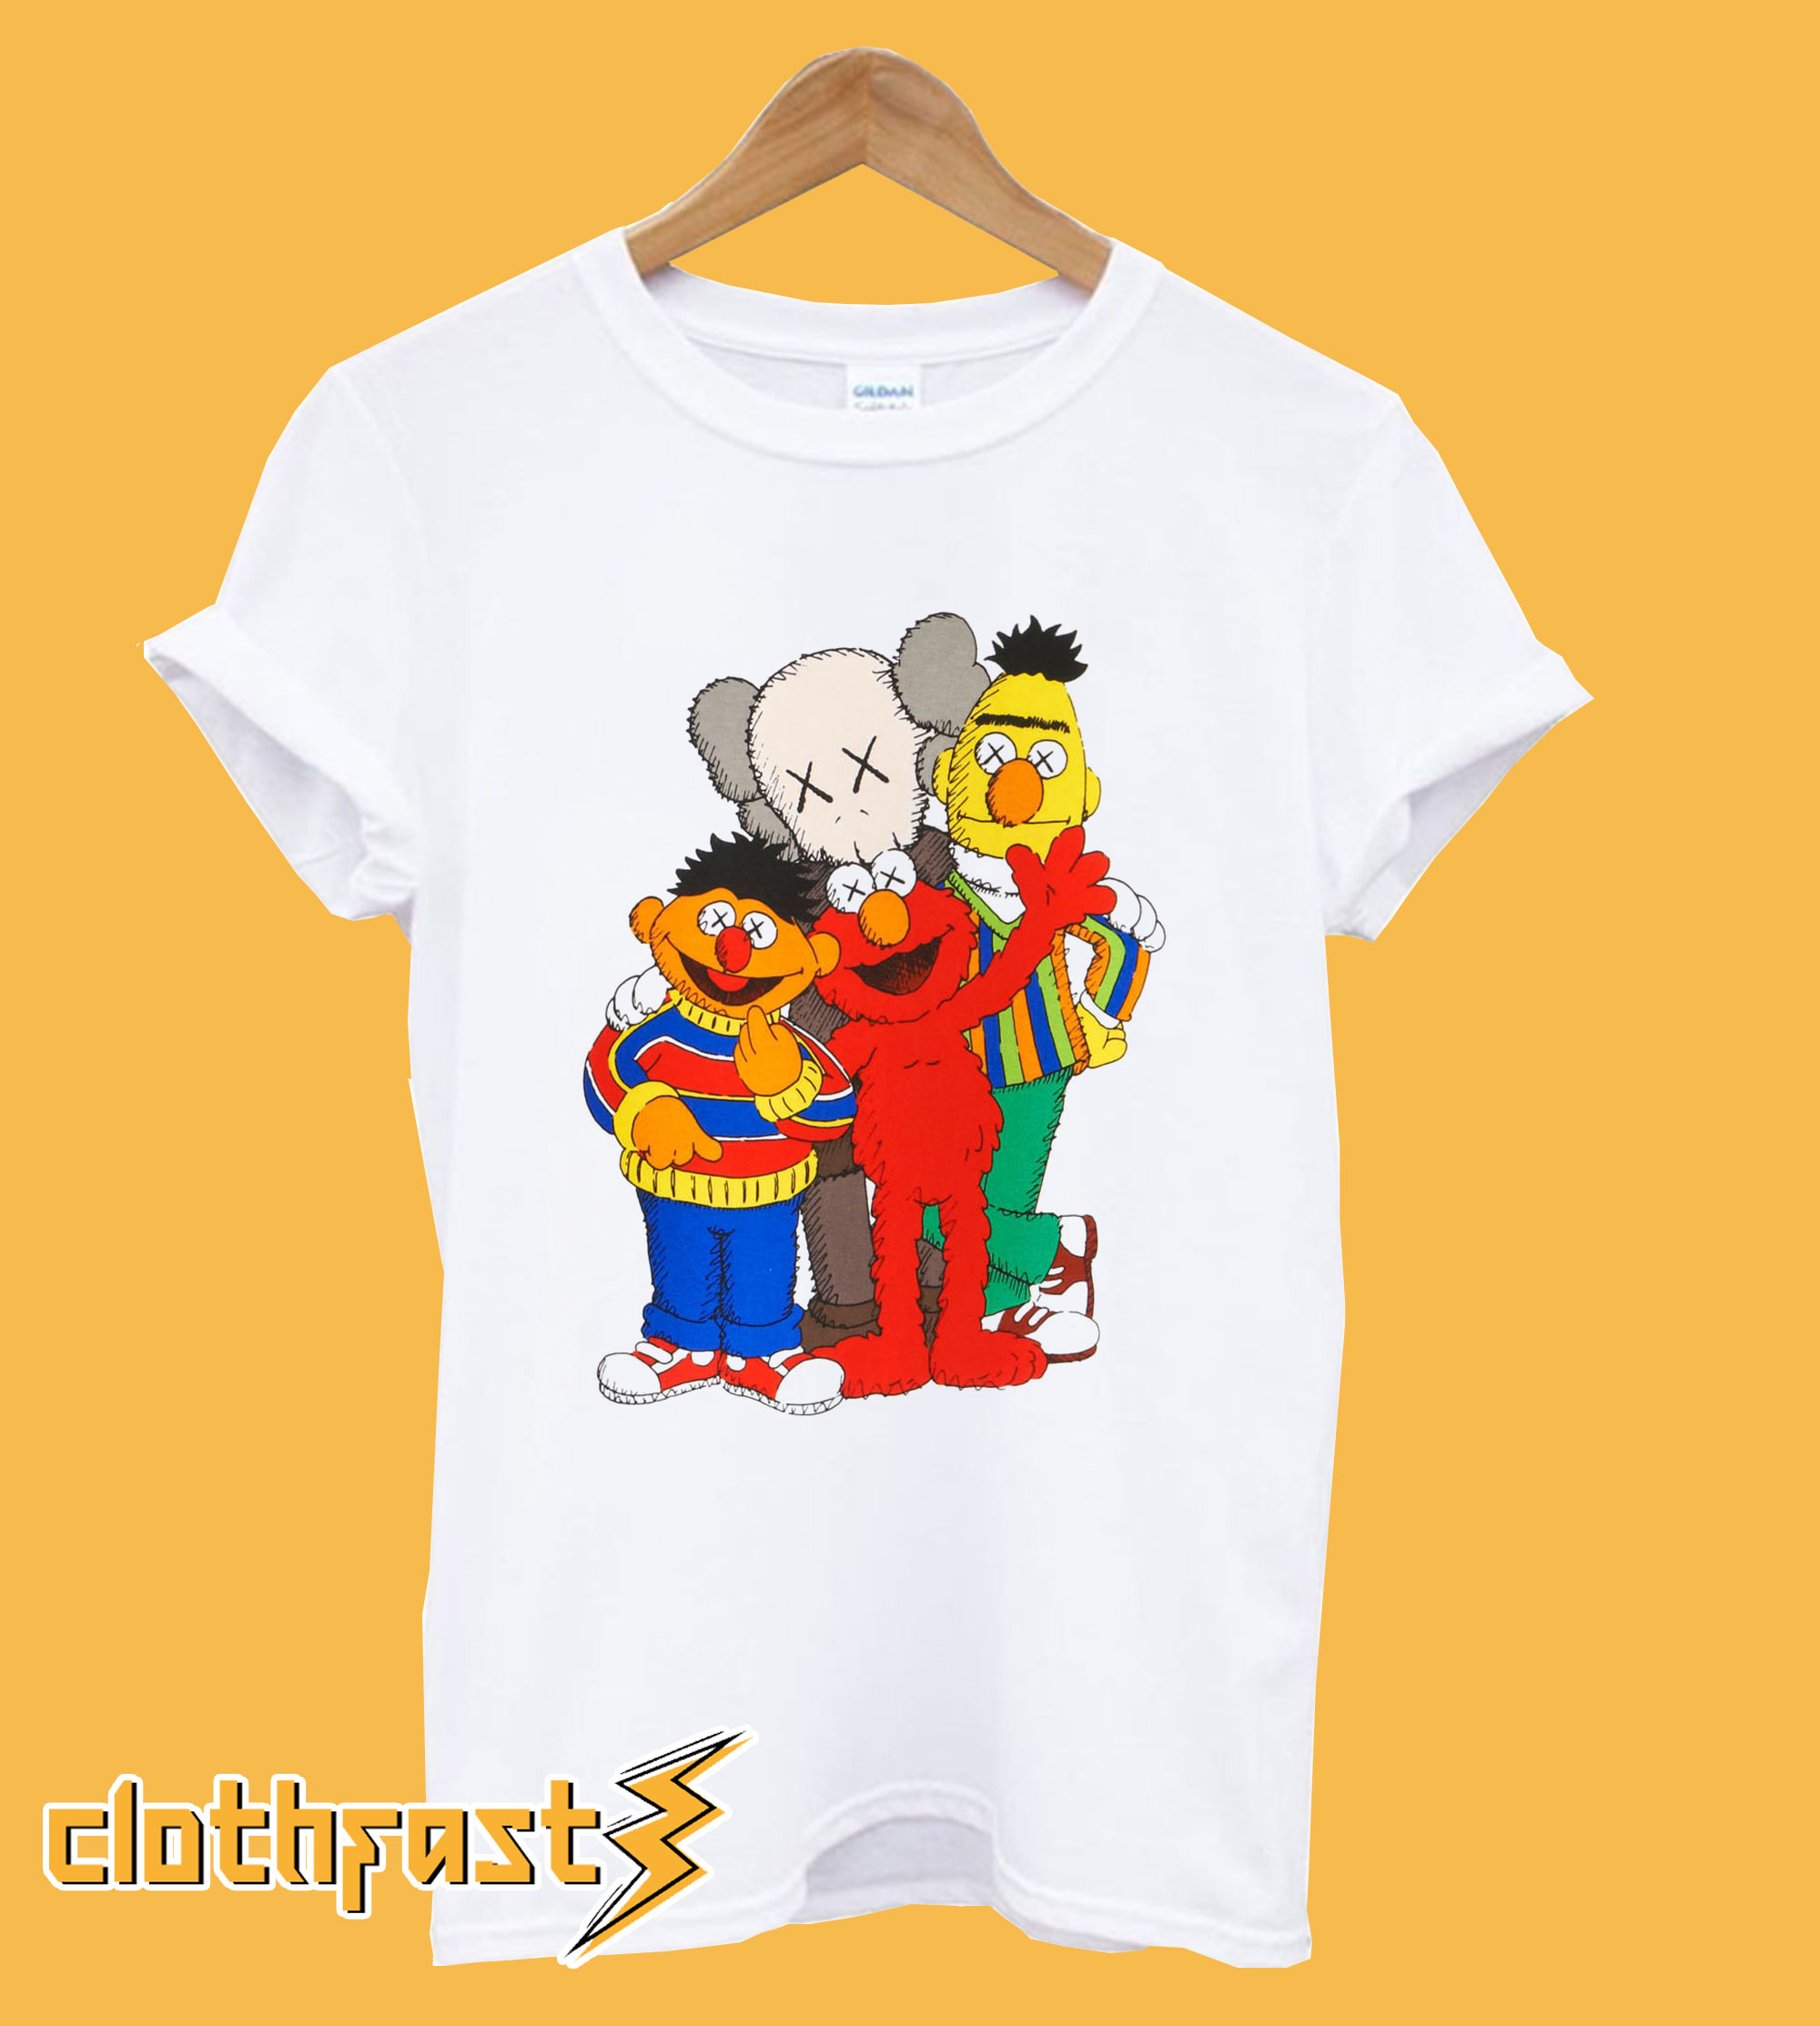 Uniqlo White Kaws X Sesame Street Graphic T-Shirt